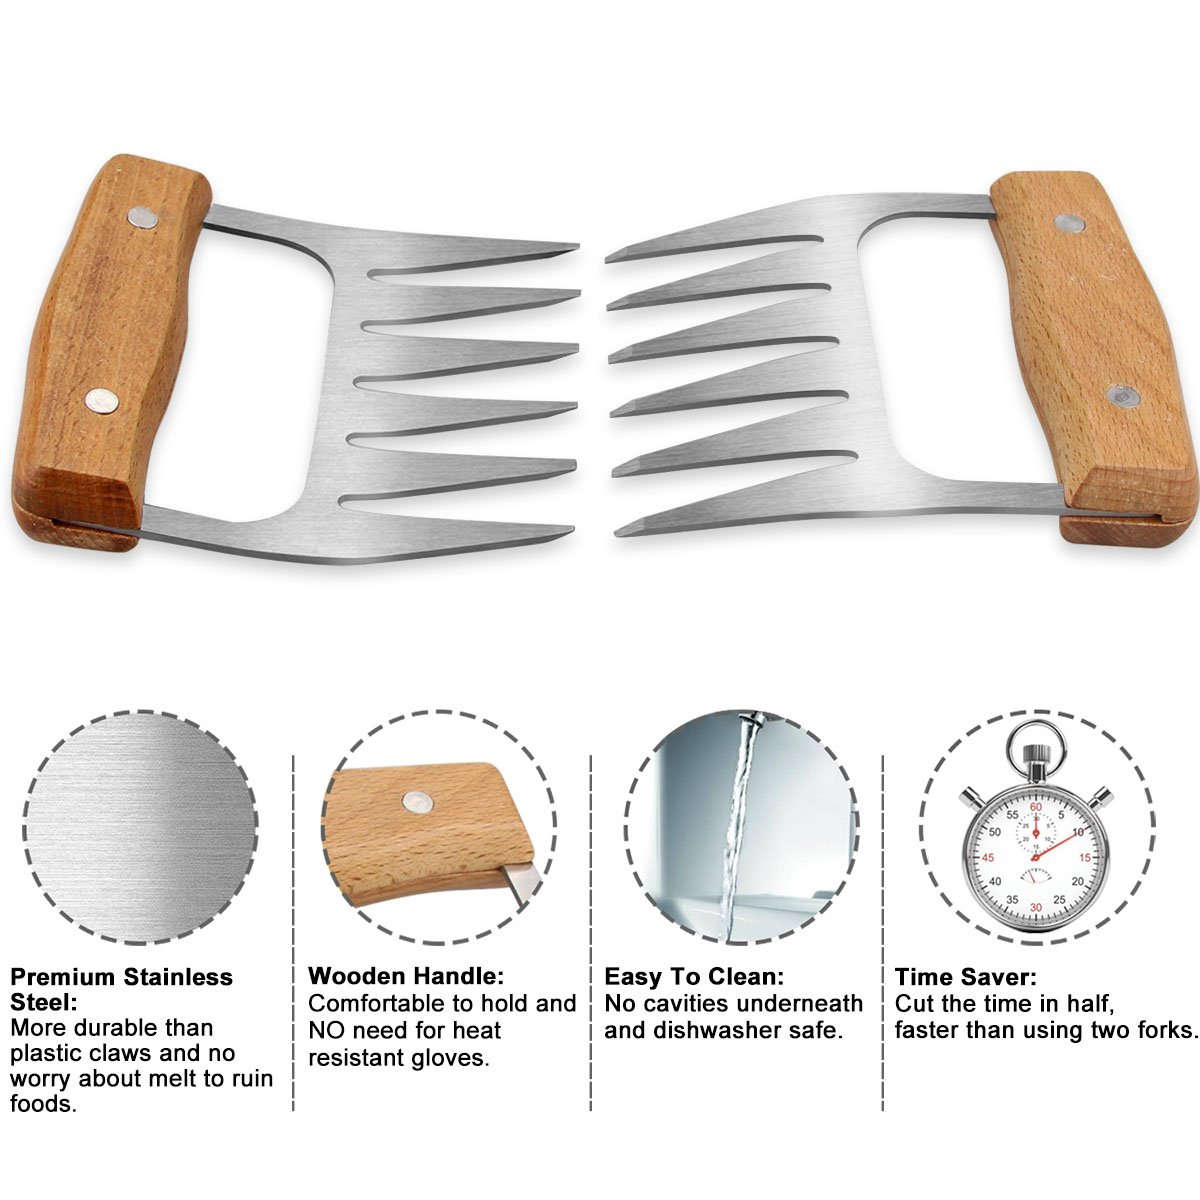 Wedama Metal Pulled Pork Shredder Meat Claws 2 Pcs Stainless Steel Bear Barbecue Meat Handling Shredding Claws BBQ Meat Handler Forks with Wooden Handle for Shredding Pulling Handing Lifting Meat